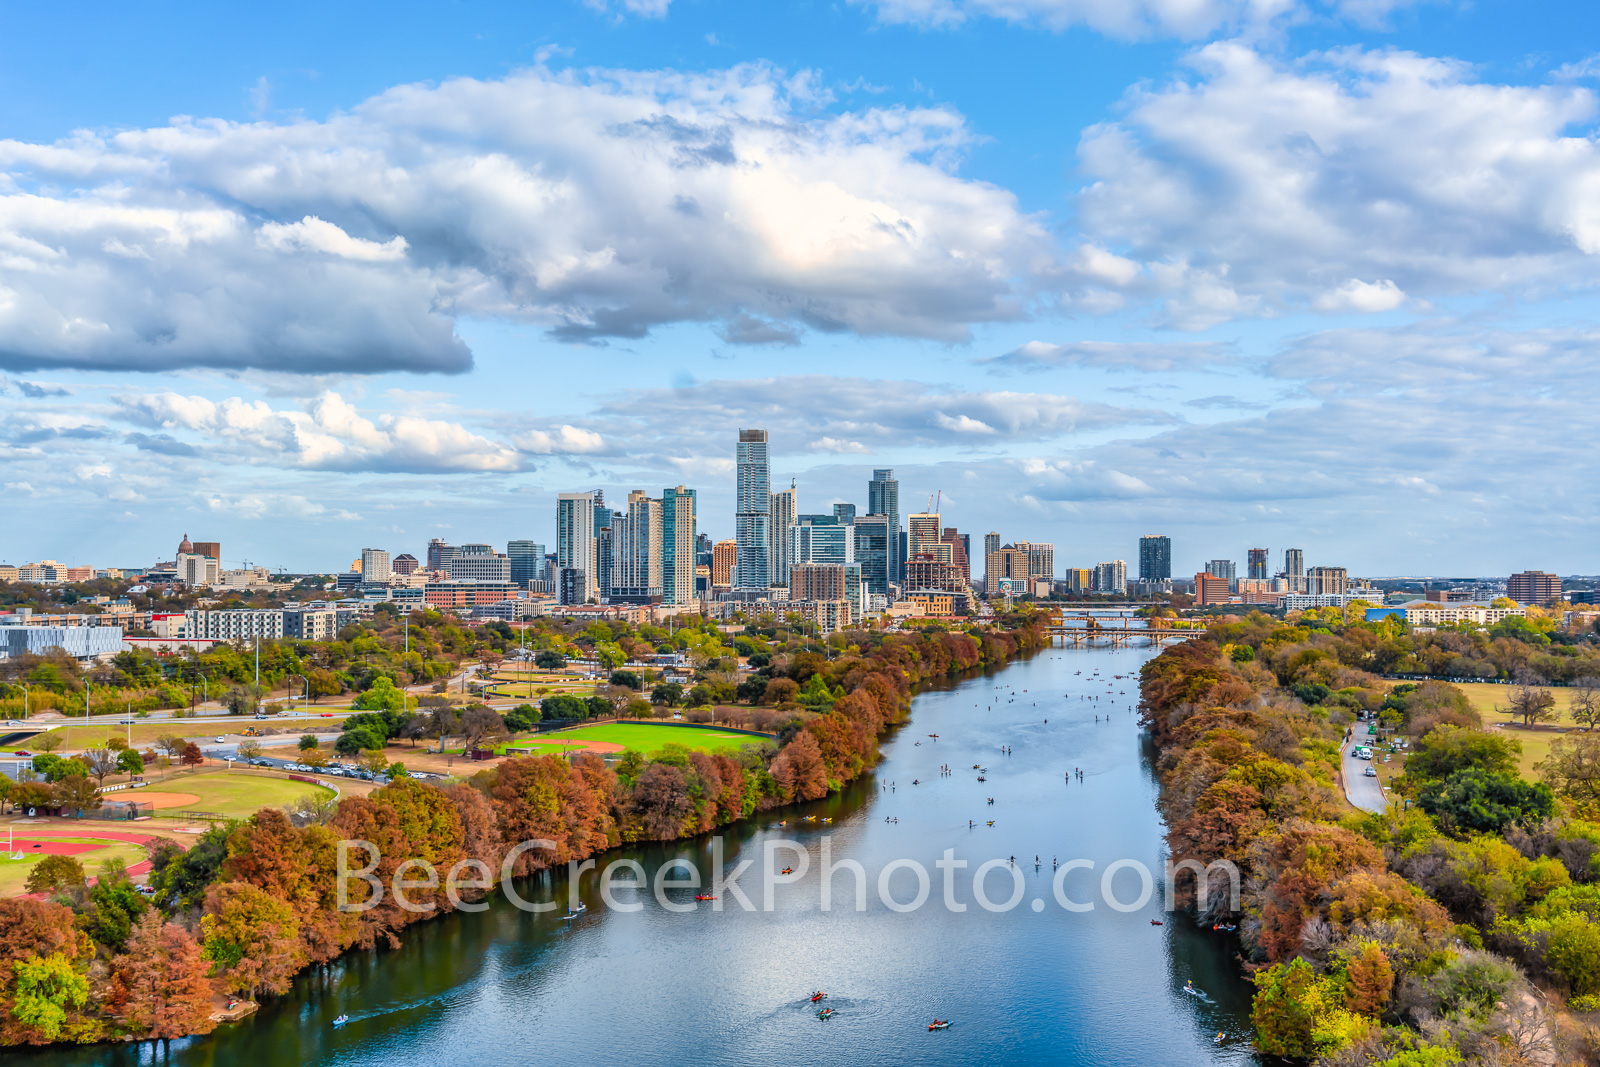 texas, fall, austin skyline, austin, lady bird lake, town lake, texas hill country, lake austin, zilker park, downtown austin, austin texas, city of austin, bald cypress, red oaks, austin texas, refle